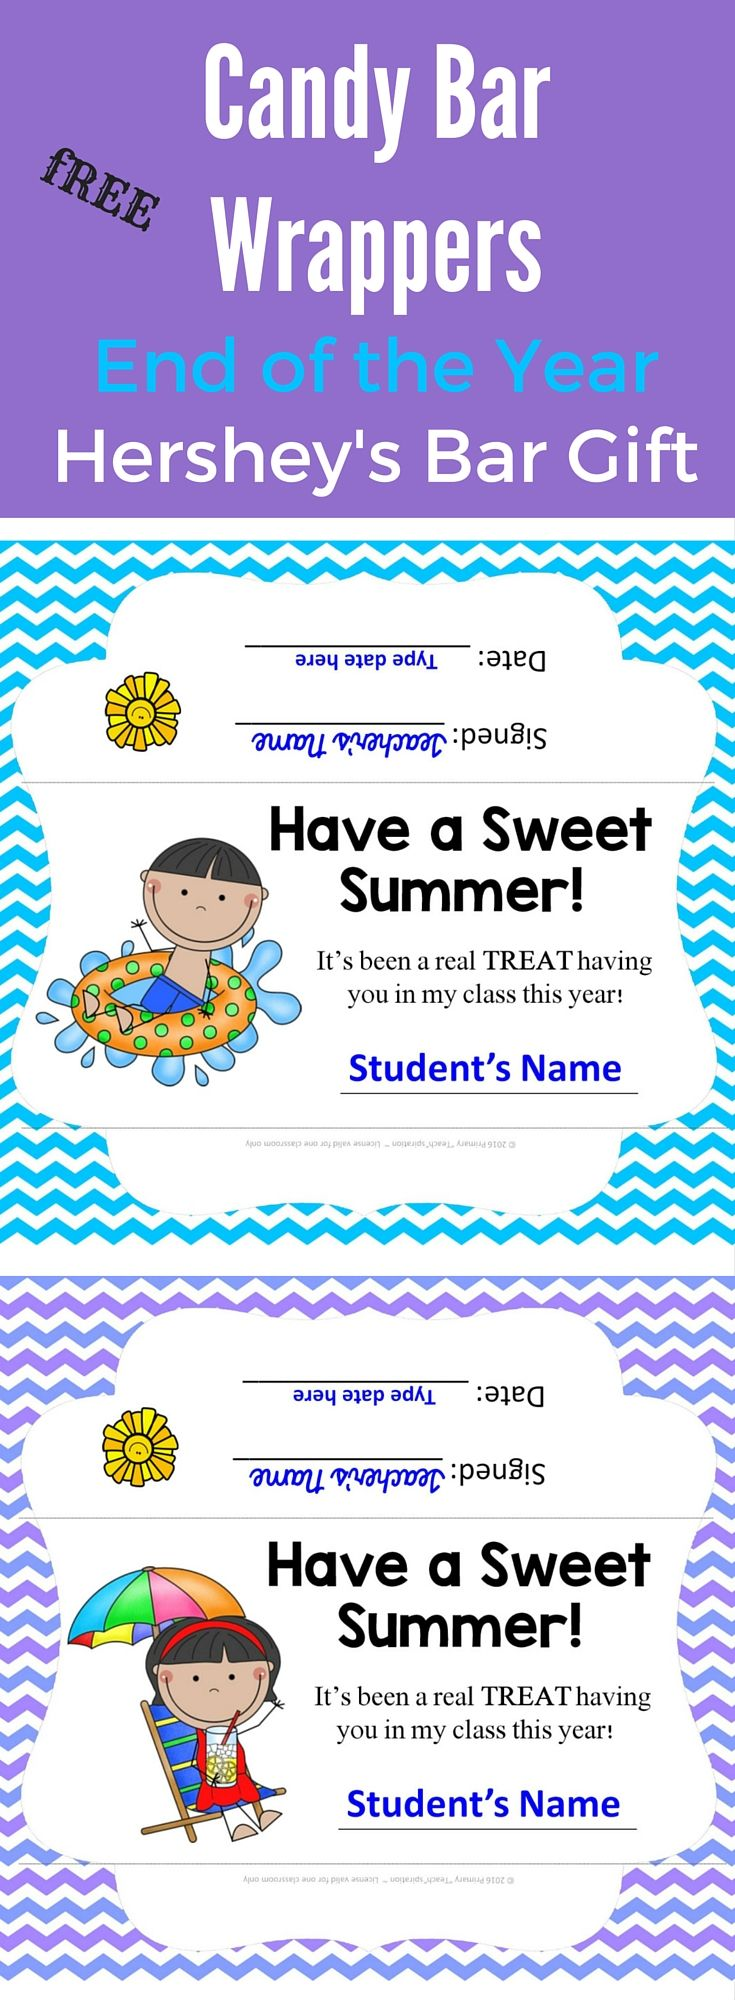 Grab theses FREE Candy Bar Wrappers to make the perfect gift for your students at the end of the year!